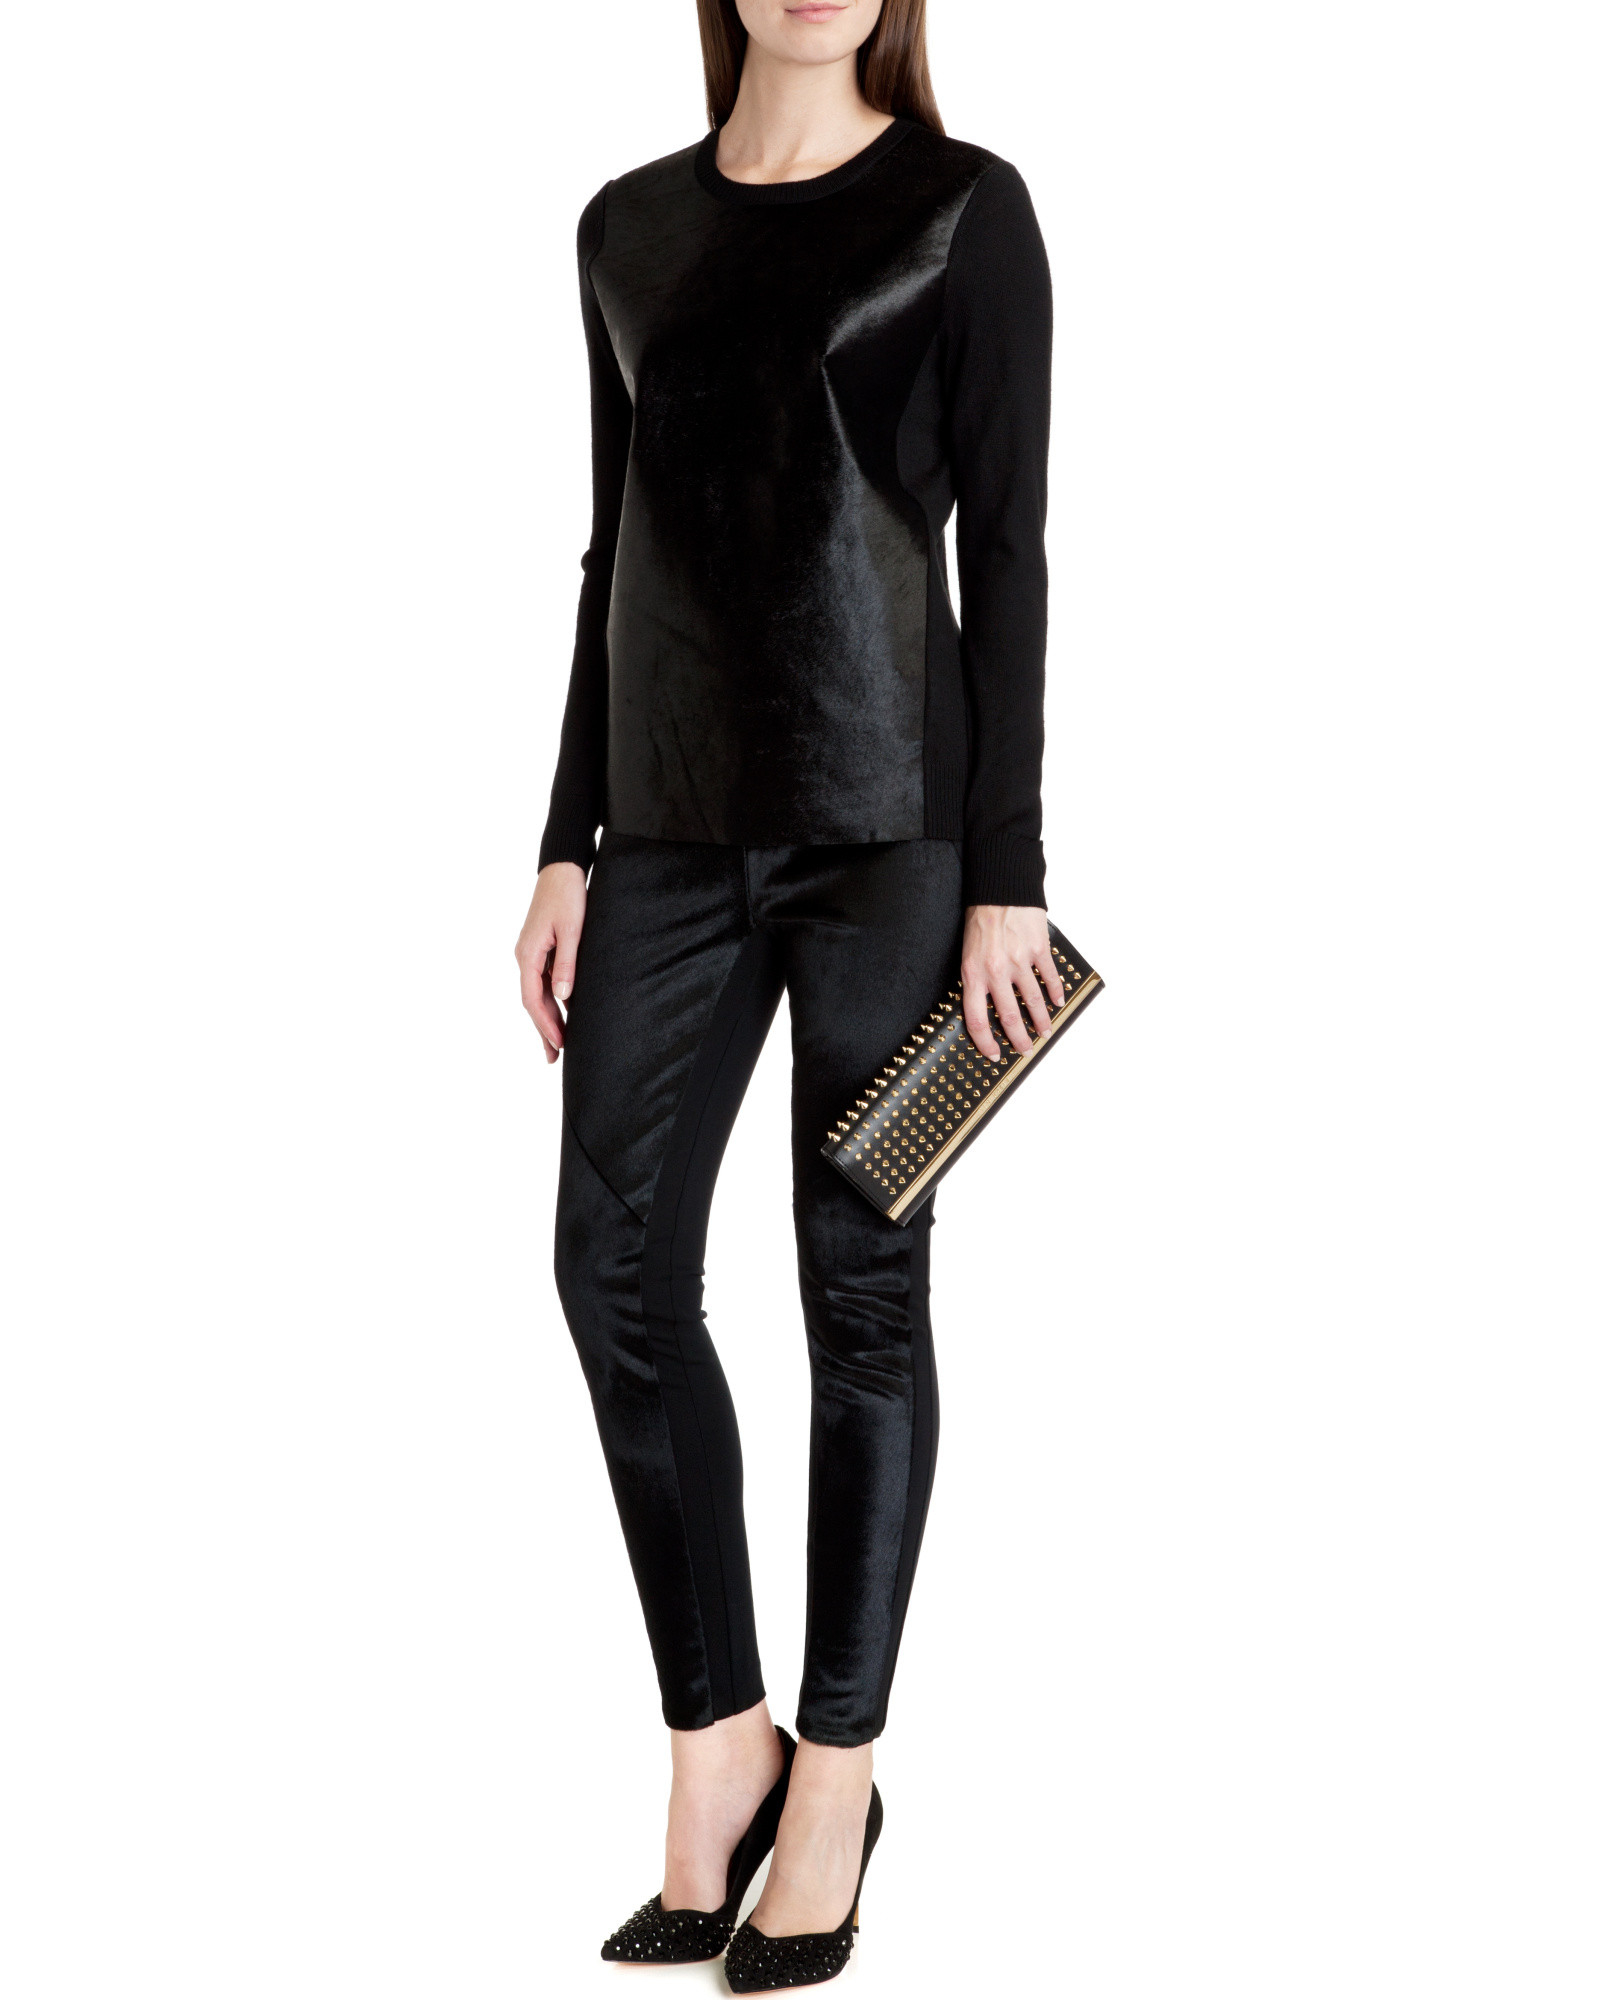 5594a92f0 Ted Baker Pony Skin Effect Leather Sweater in Black - Lyst